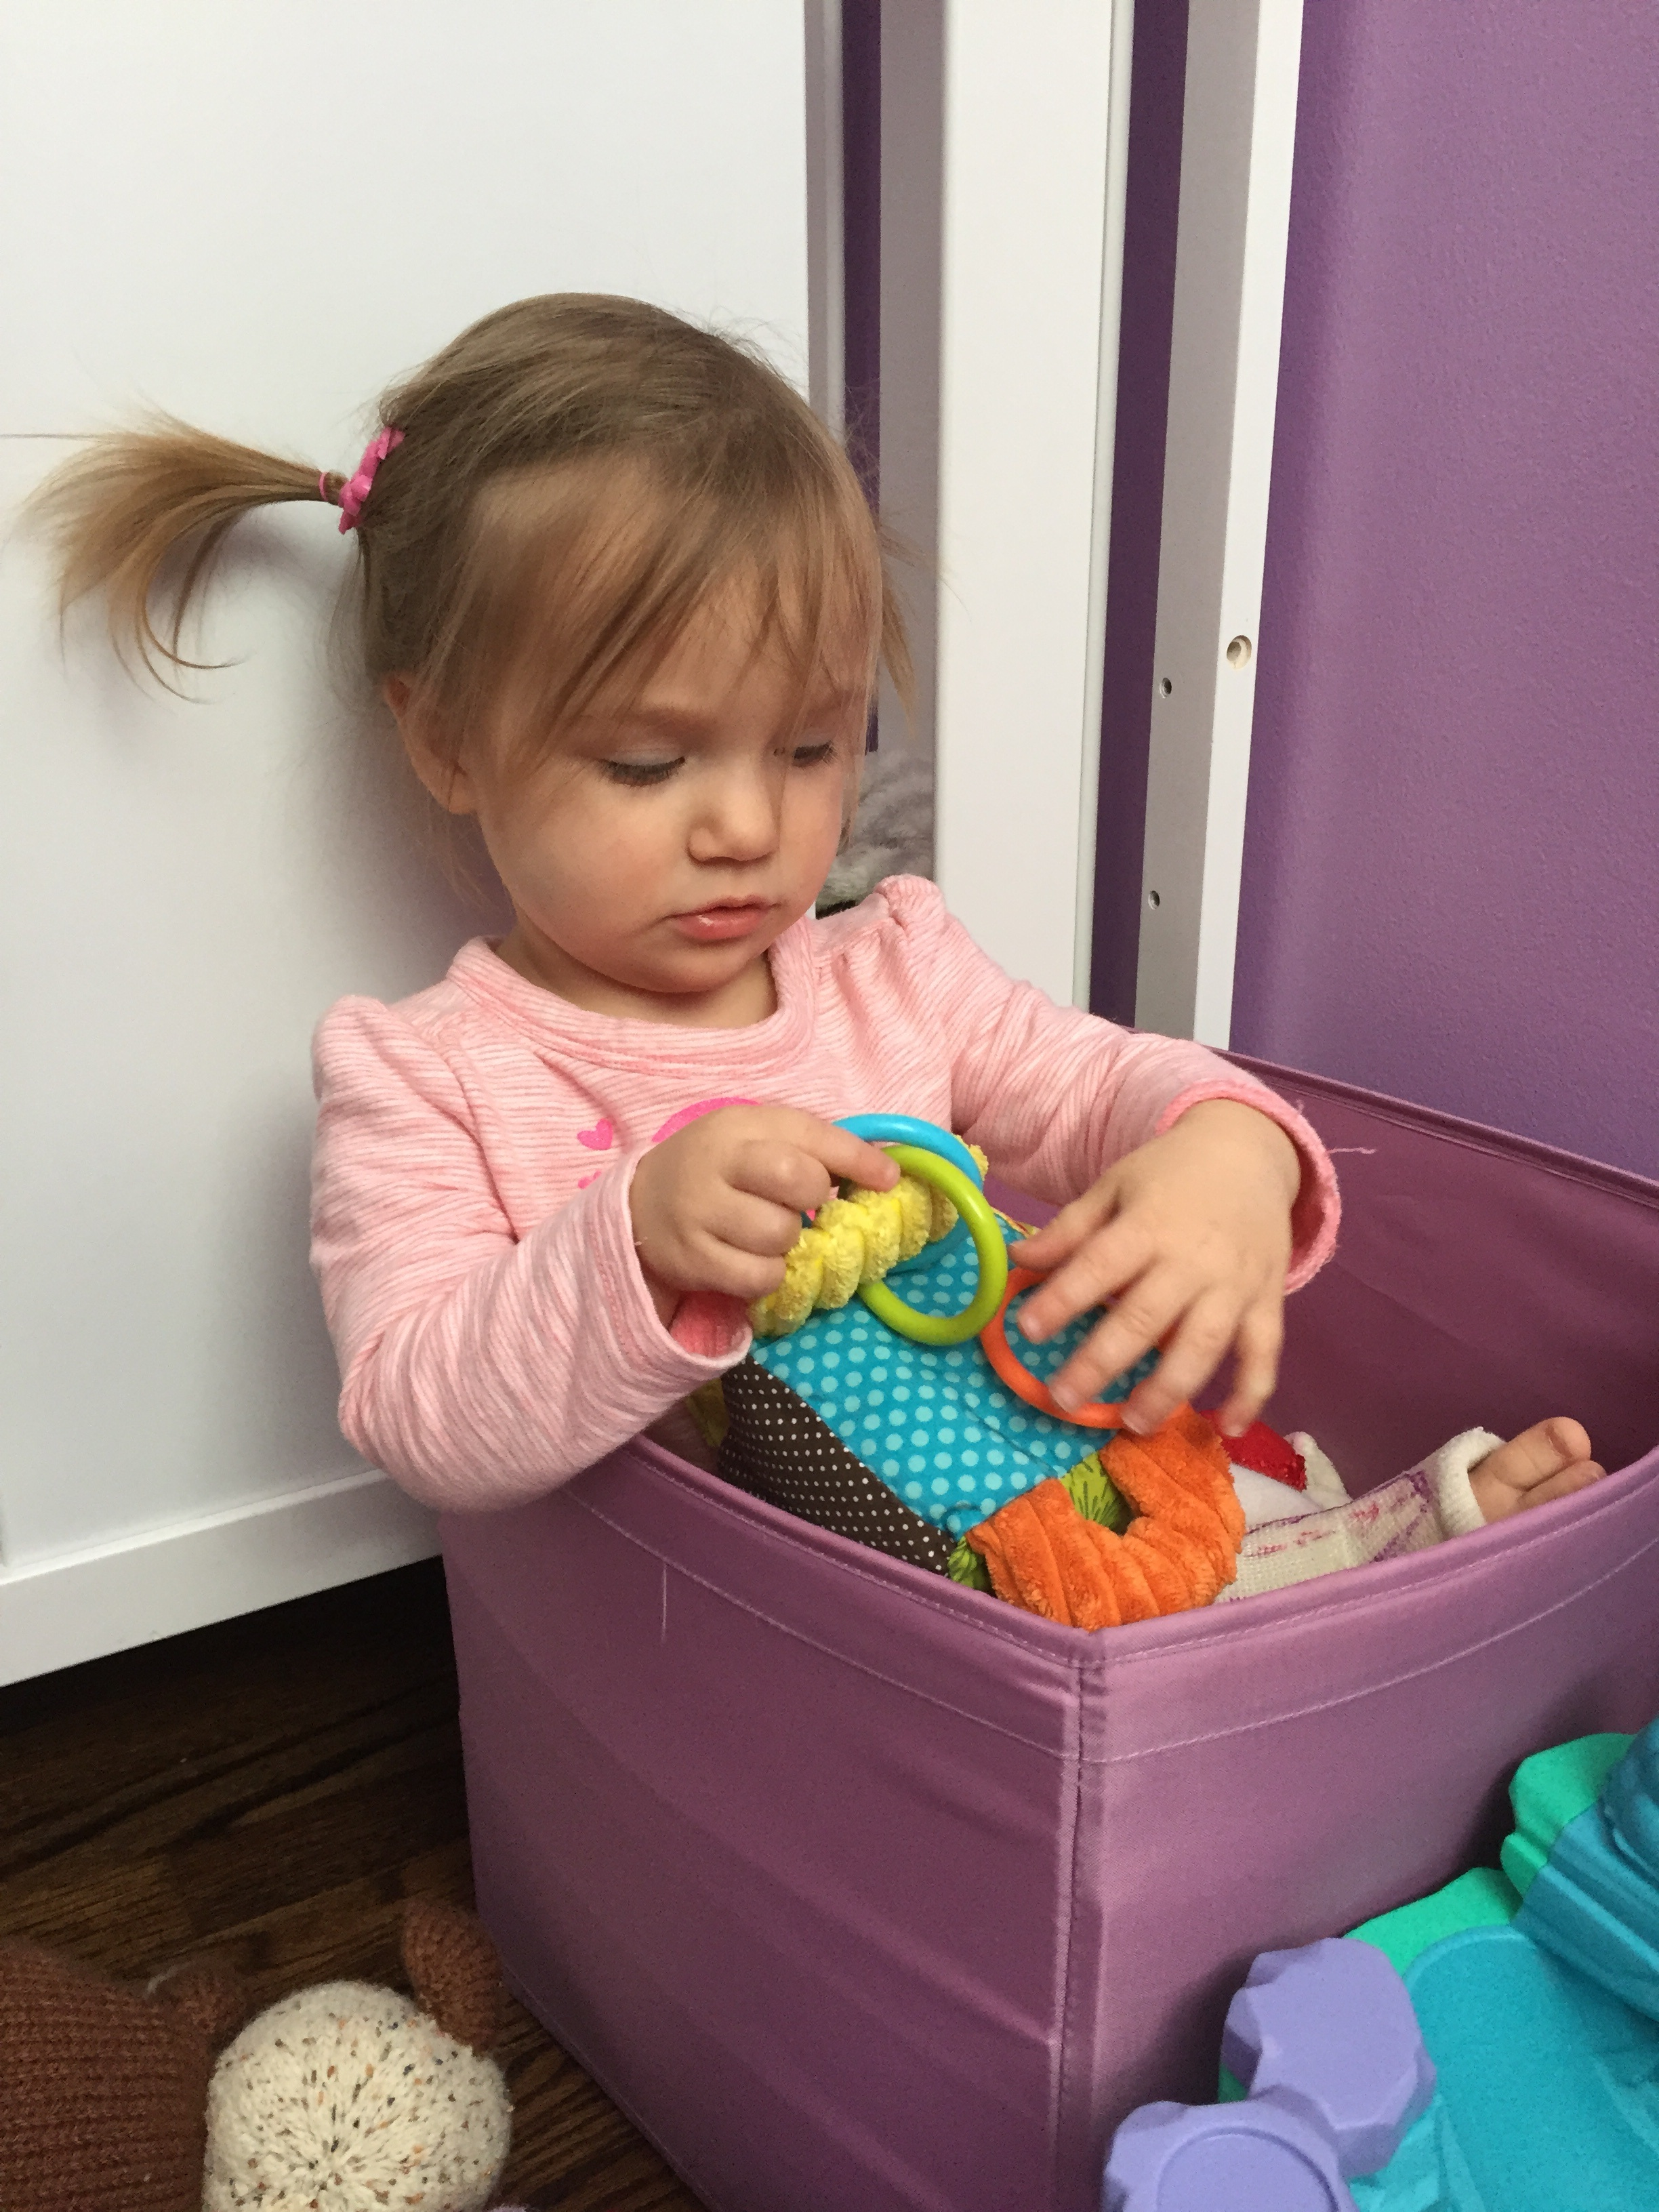 Toddler in toy bin